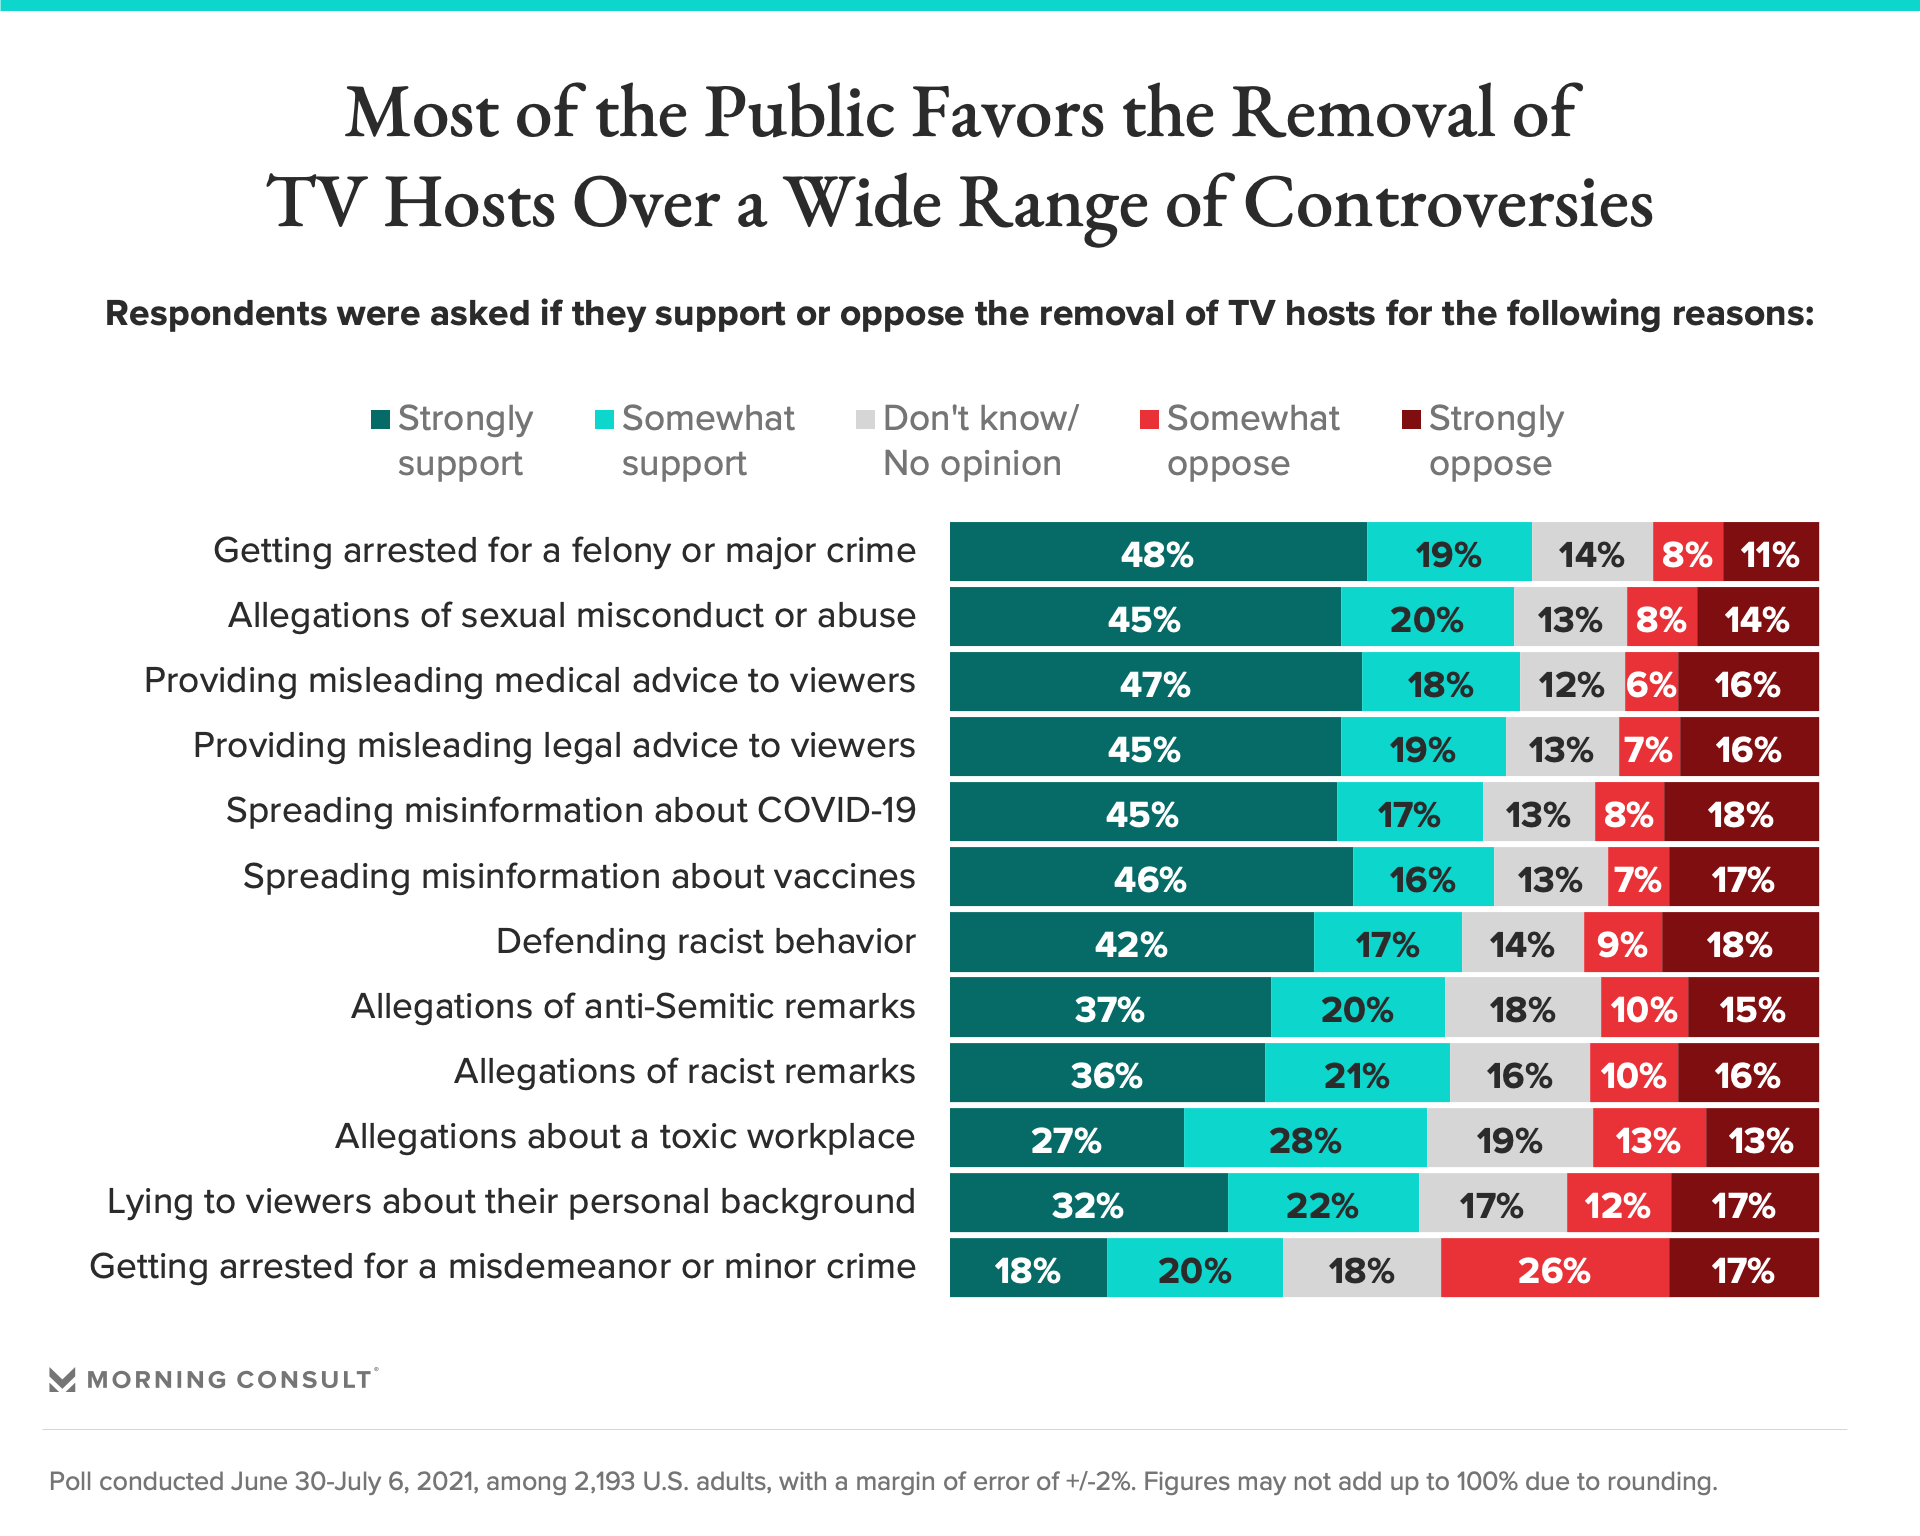 most of the public favors the removal of tv hosts over a wide range of controversies